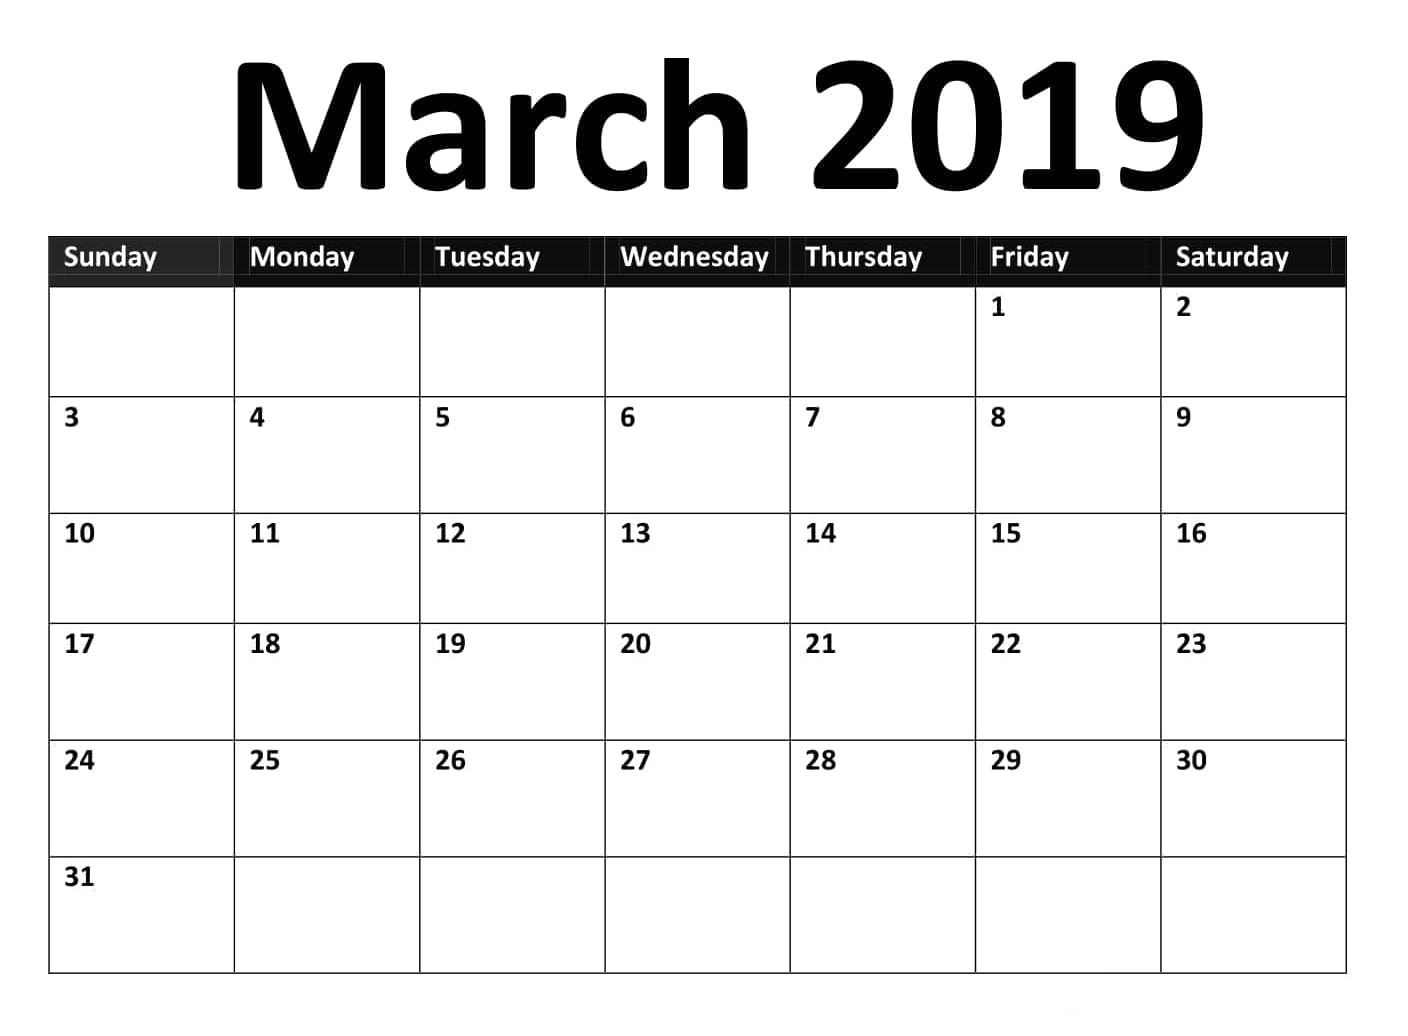 March 2019 Google Spreadsheet Calendar Template Calendar